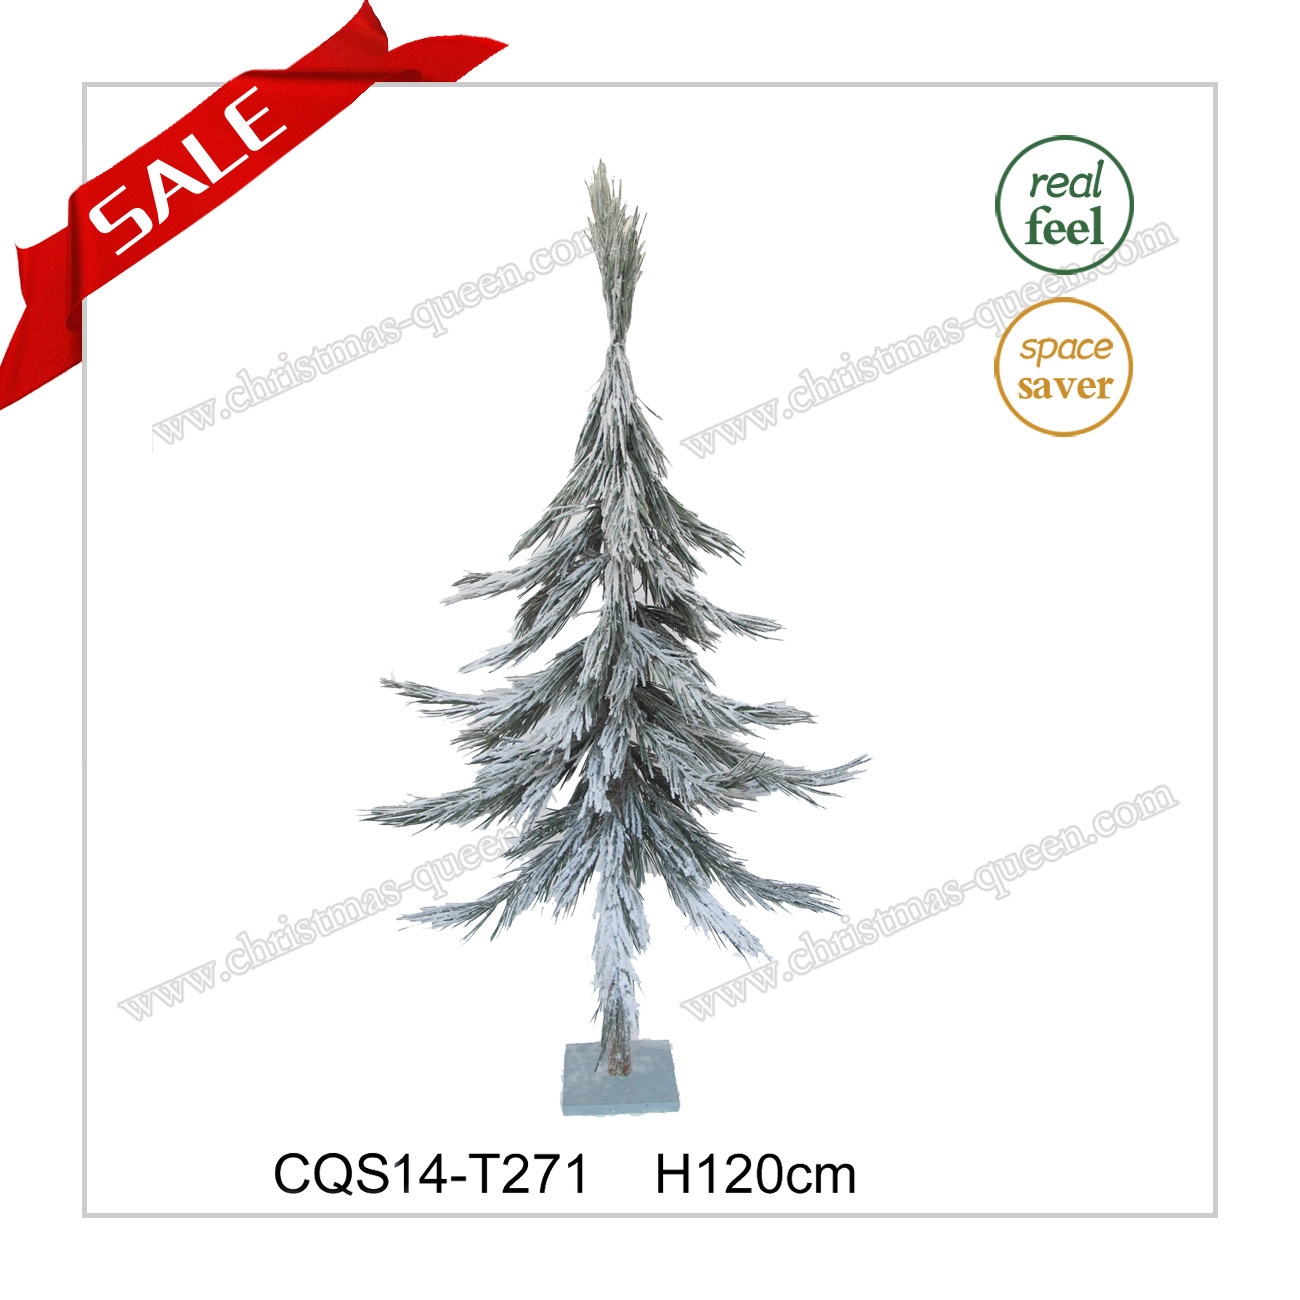 2017 Hottest Plastic Artificial Christmas Tree with Snow H120-180cm